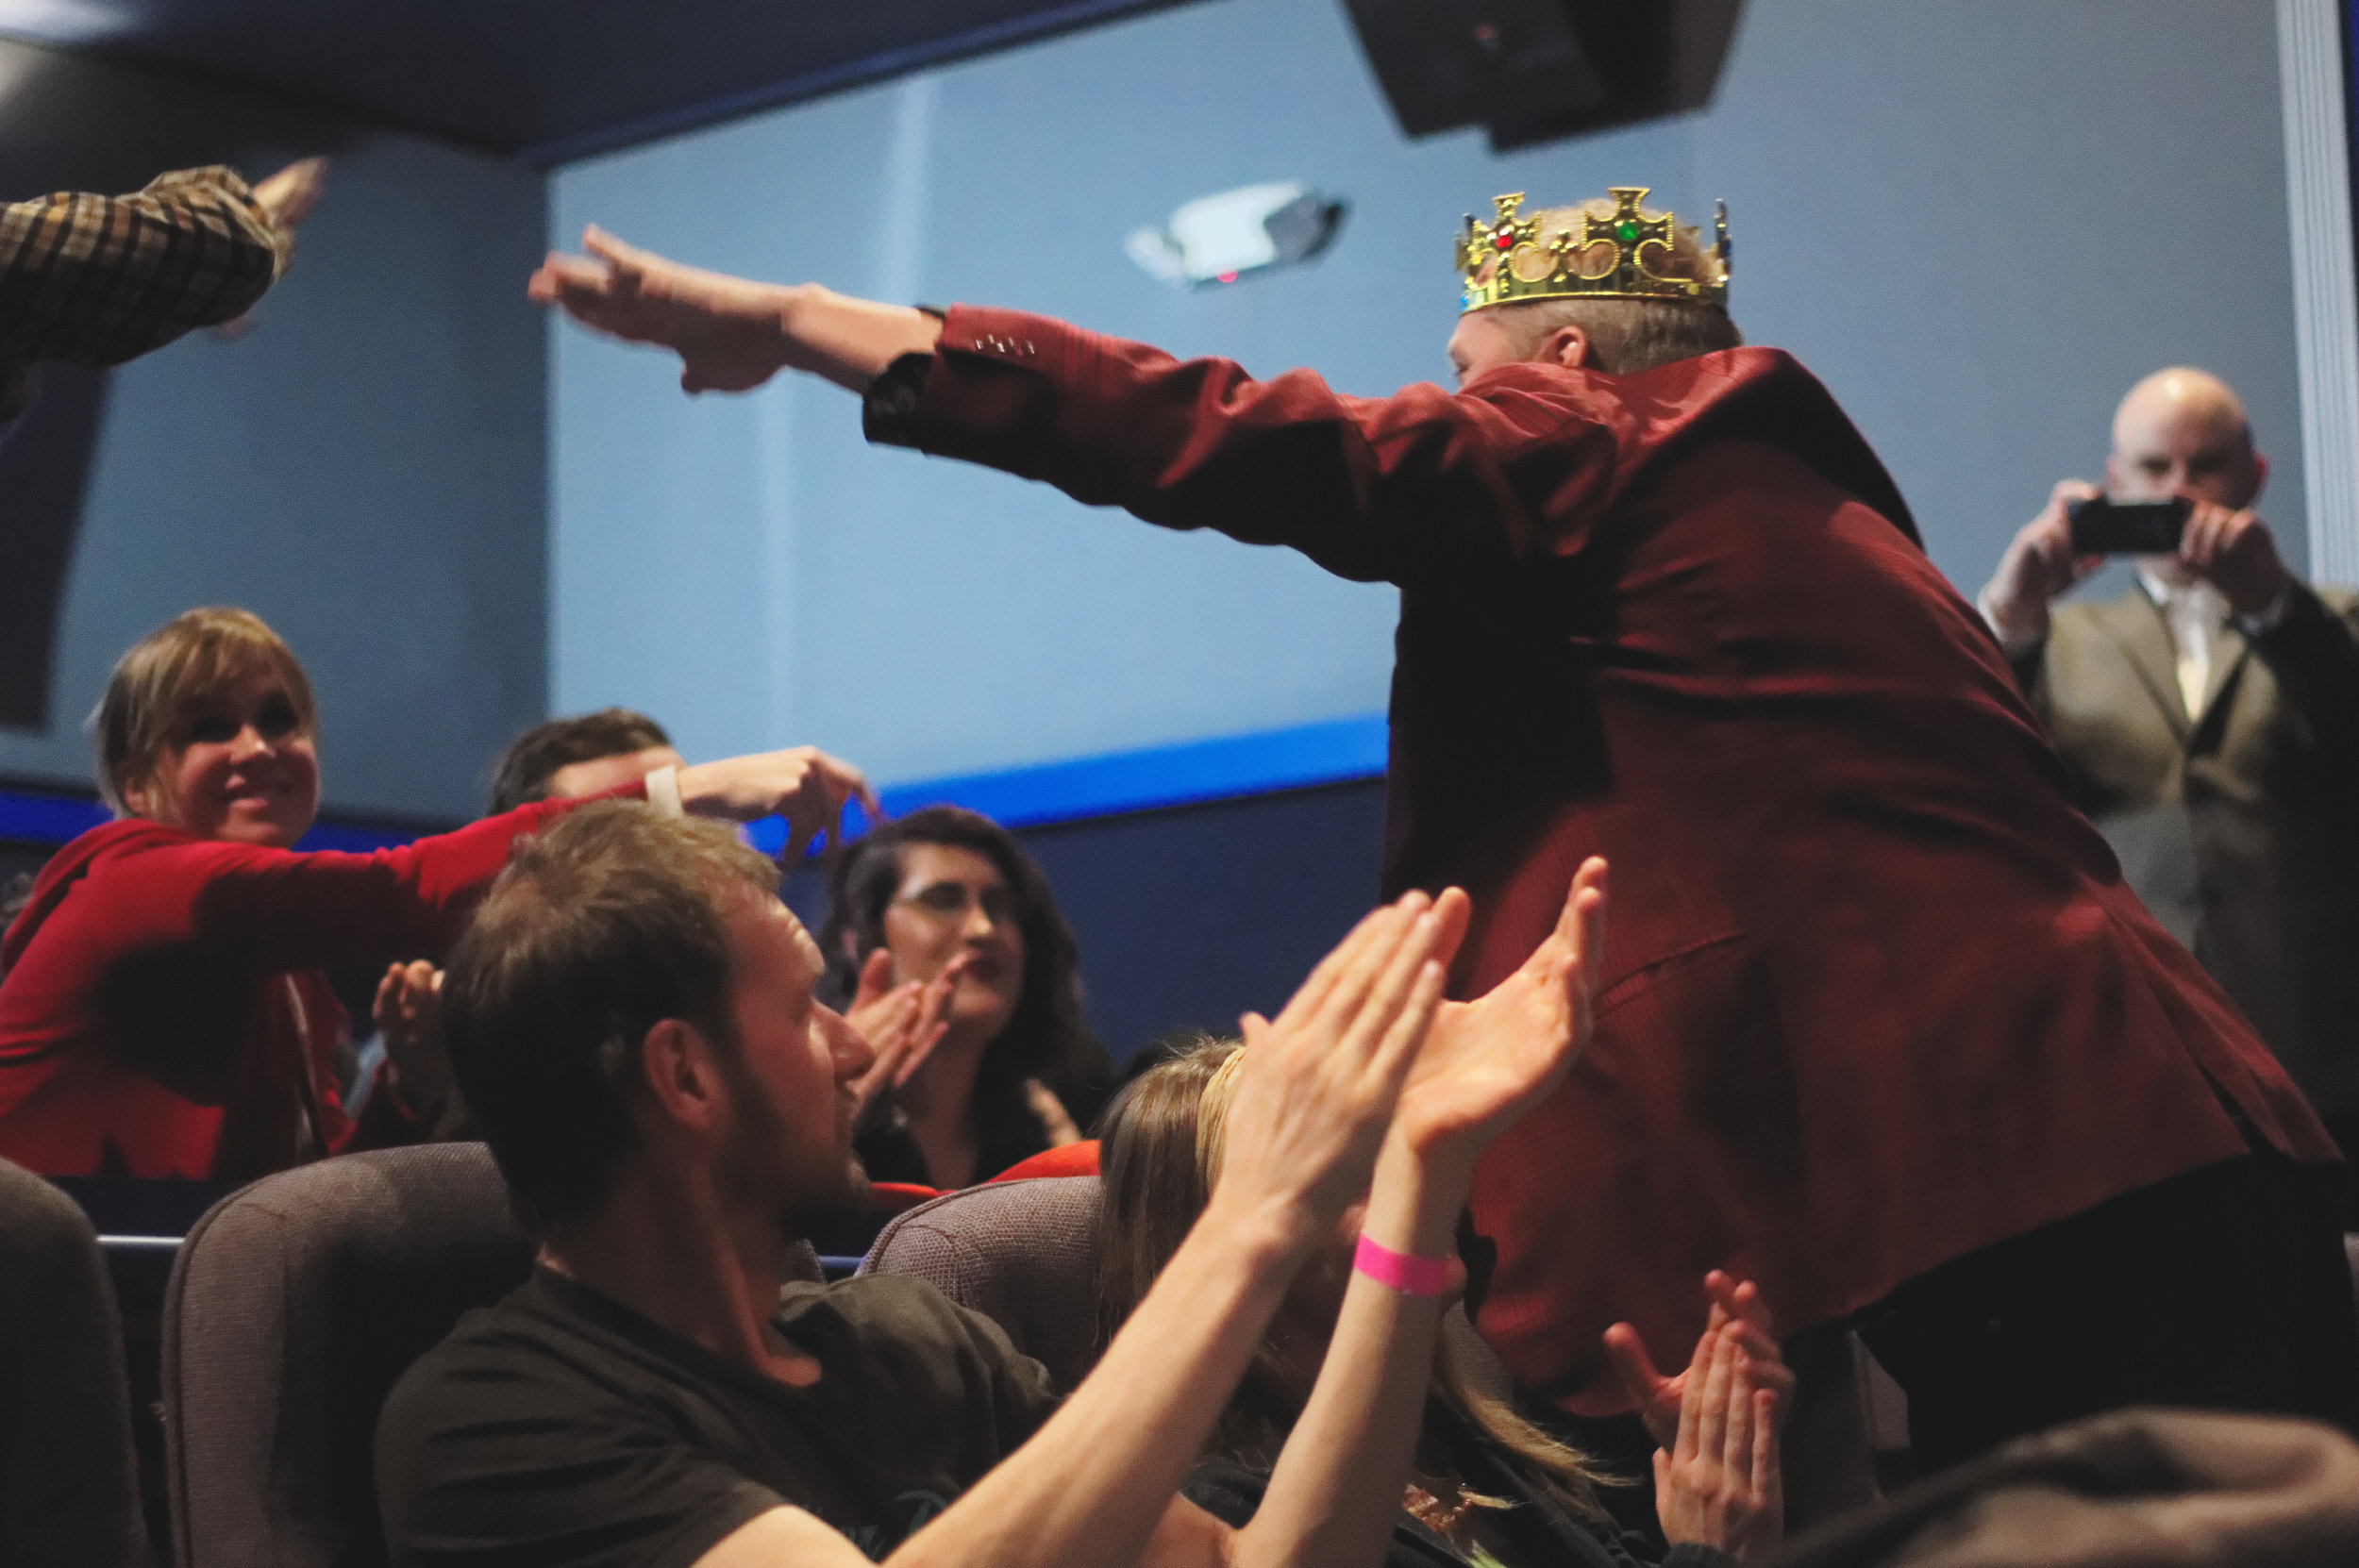 Raymond P. Whalen the star of the documentary VORE KING greets audience members following the award winning film's screening at MidWest WeirdFest 2017. (Photo by Luong Huynh)